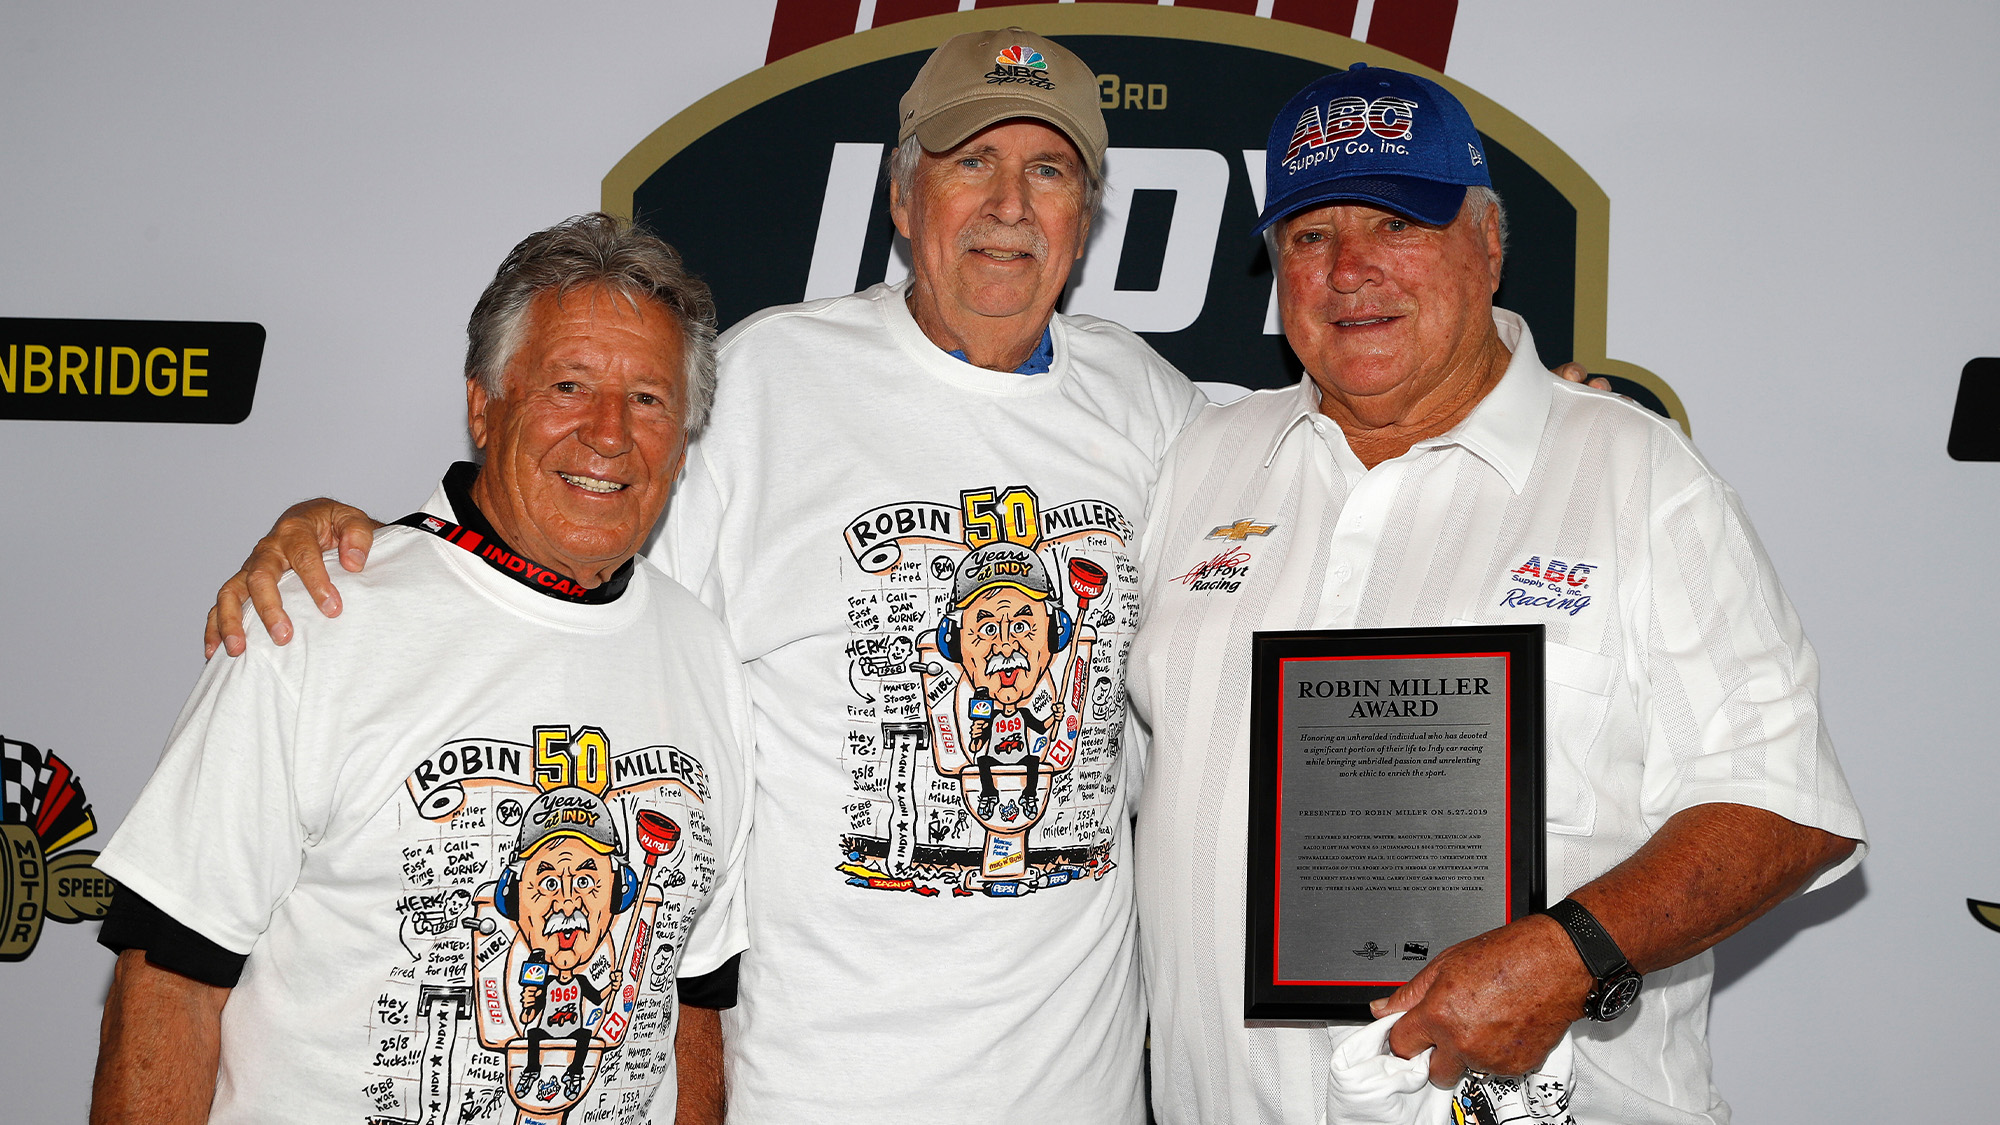 Robin Miller with Mario Andretti and AJ Foyt